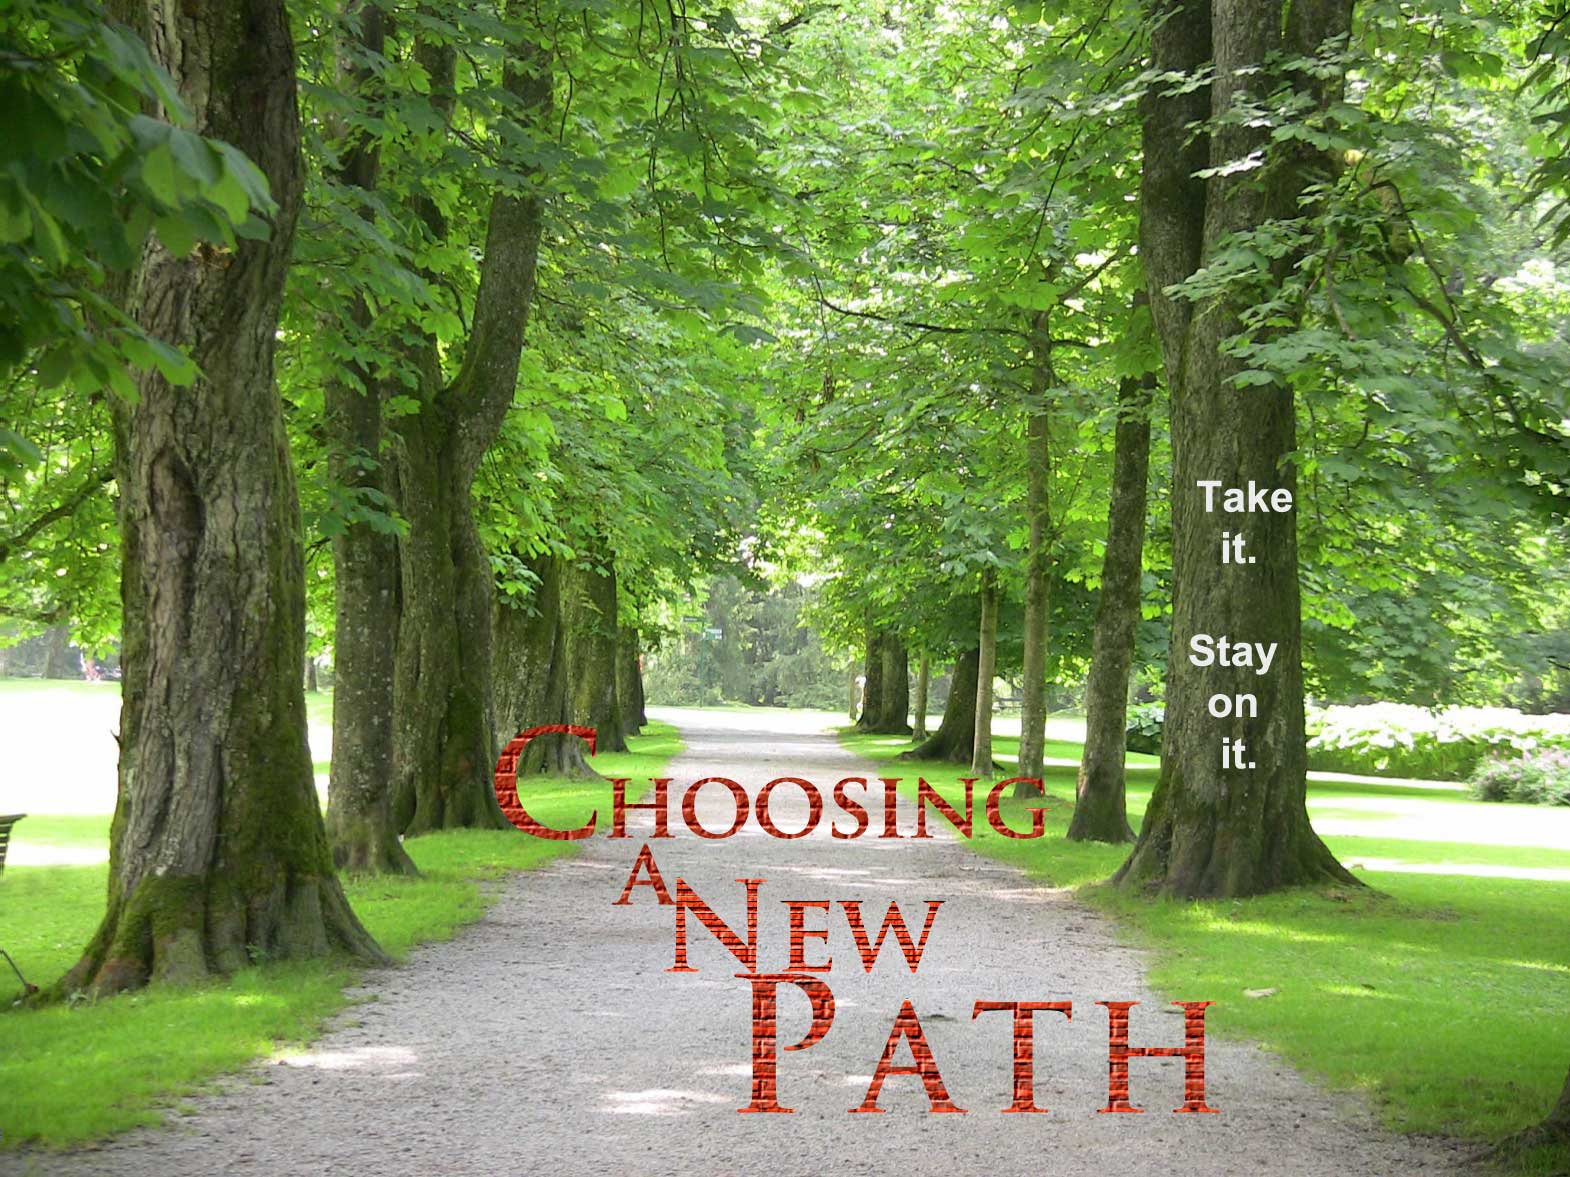 Choosing-a-New-Path